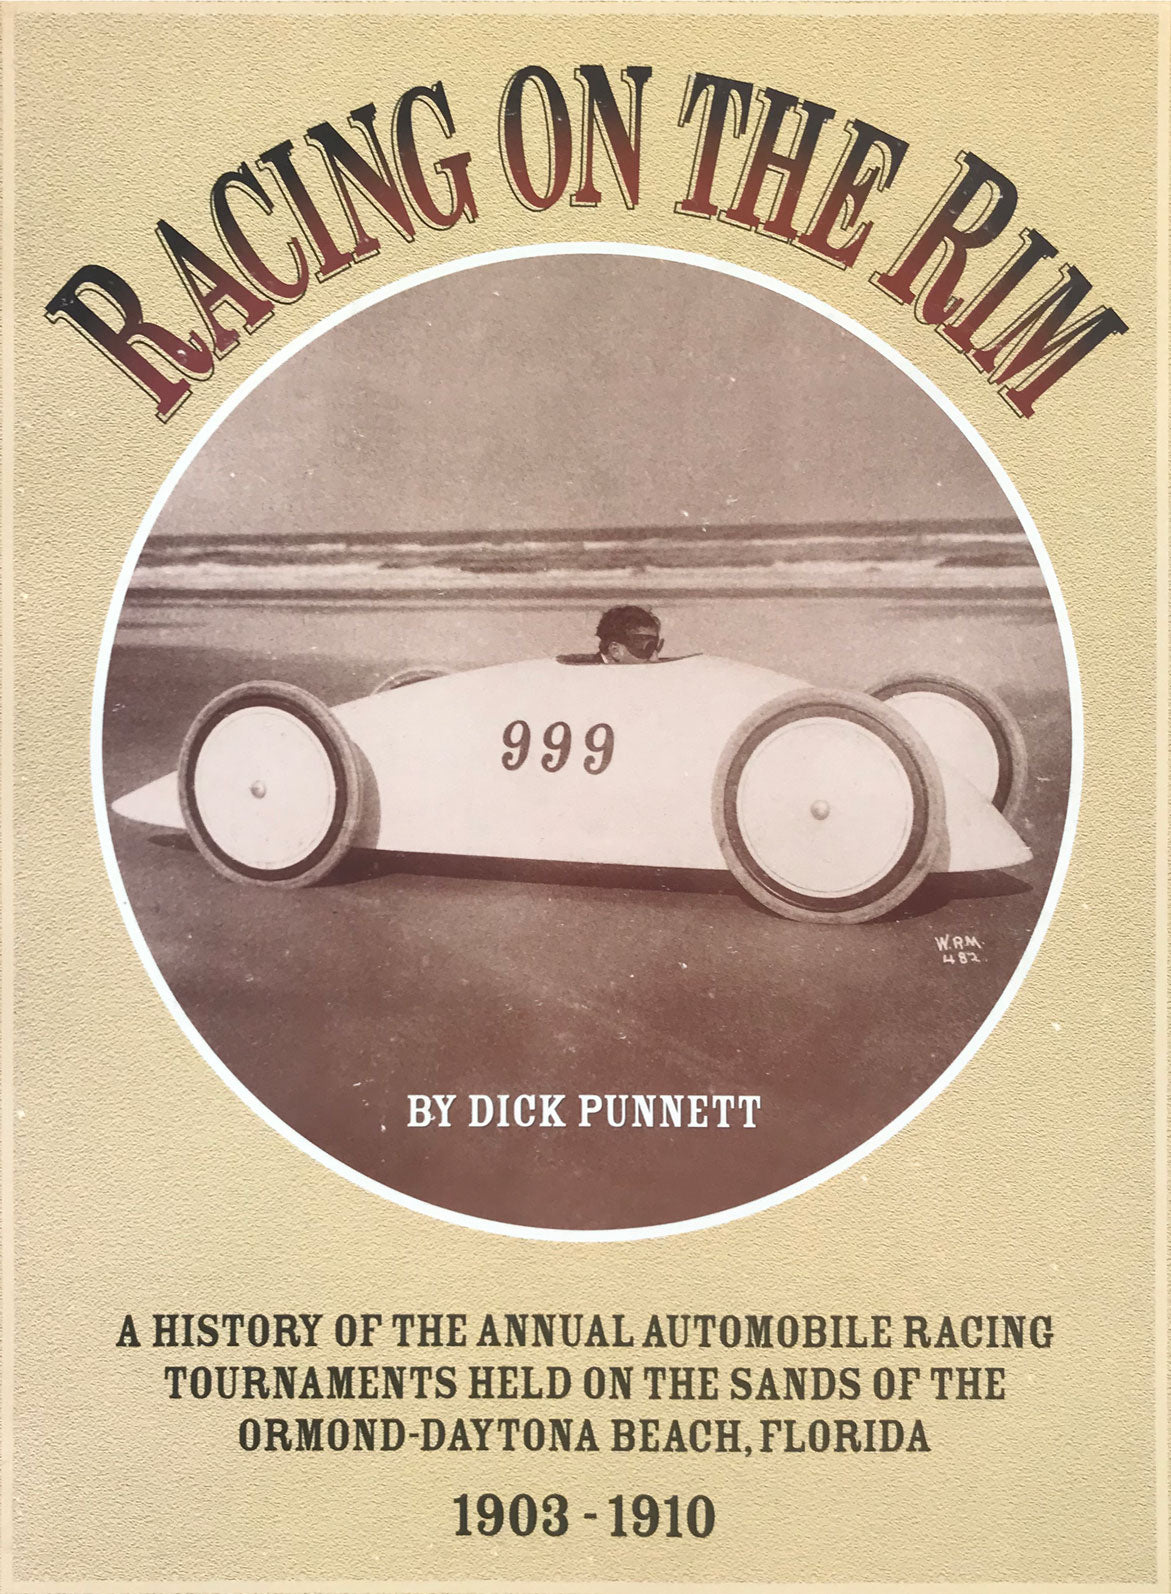 Racing on the Rim book by Dick Punnett, 1997